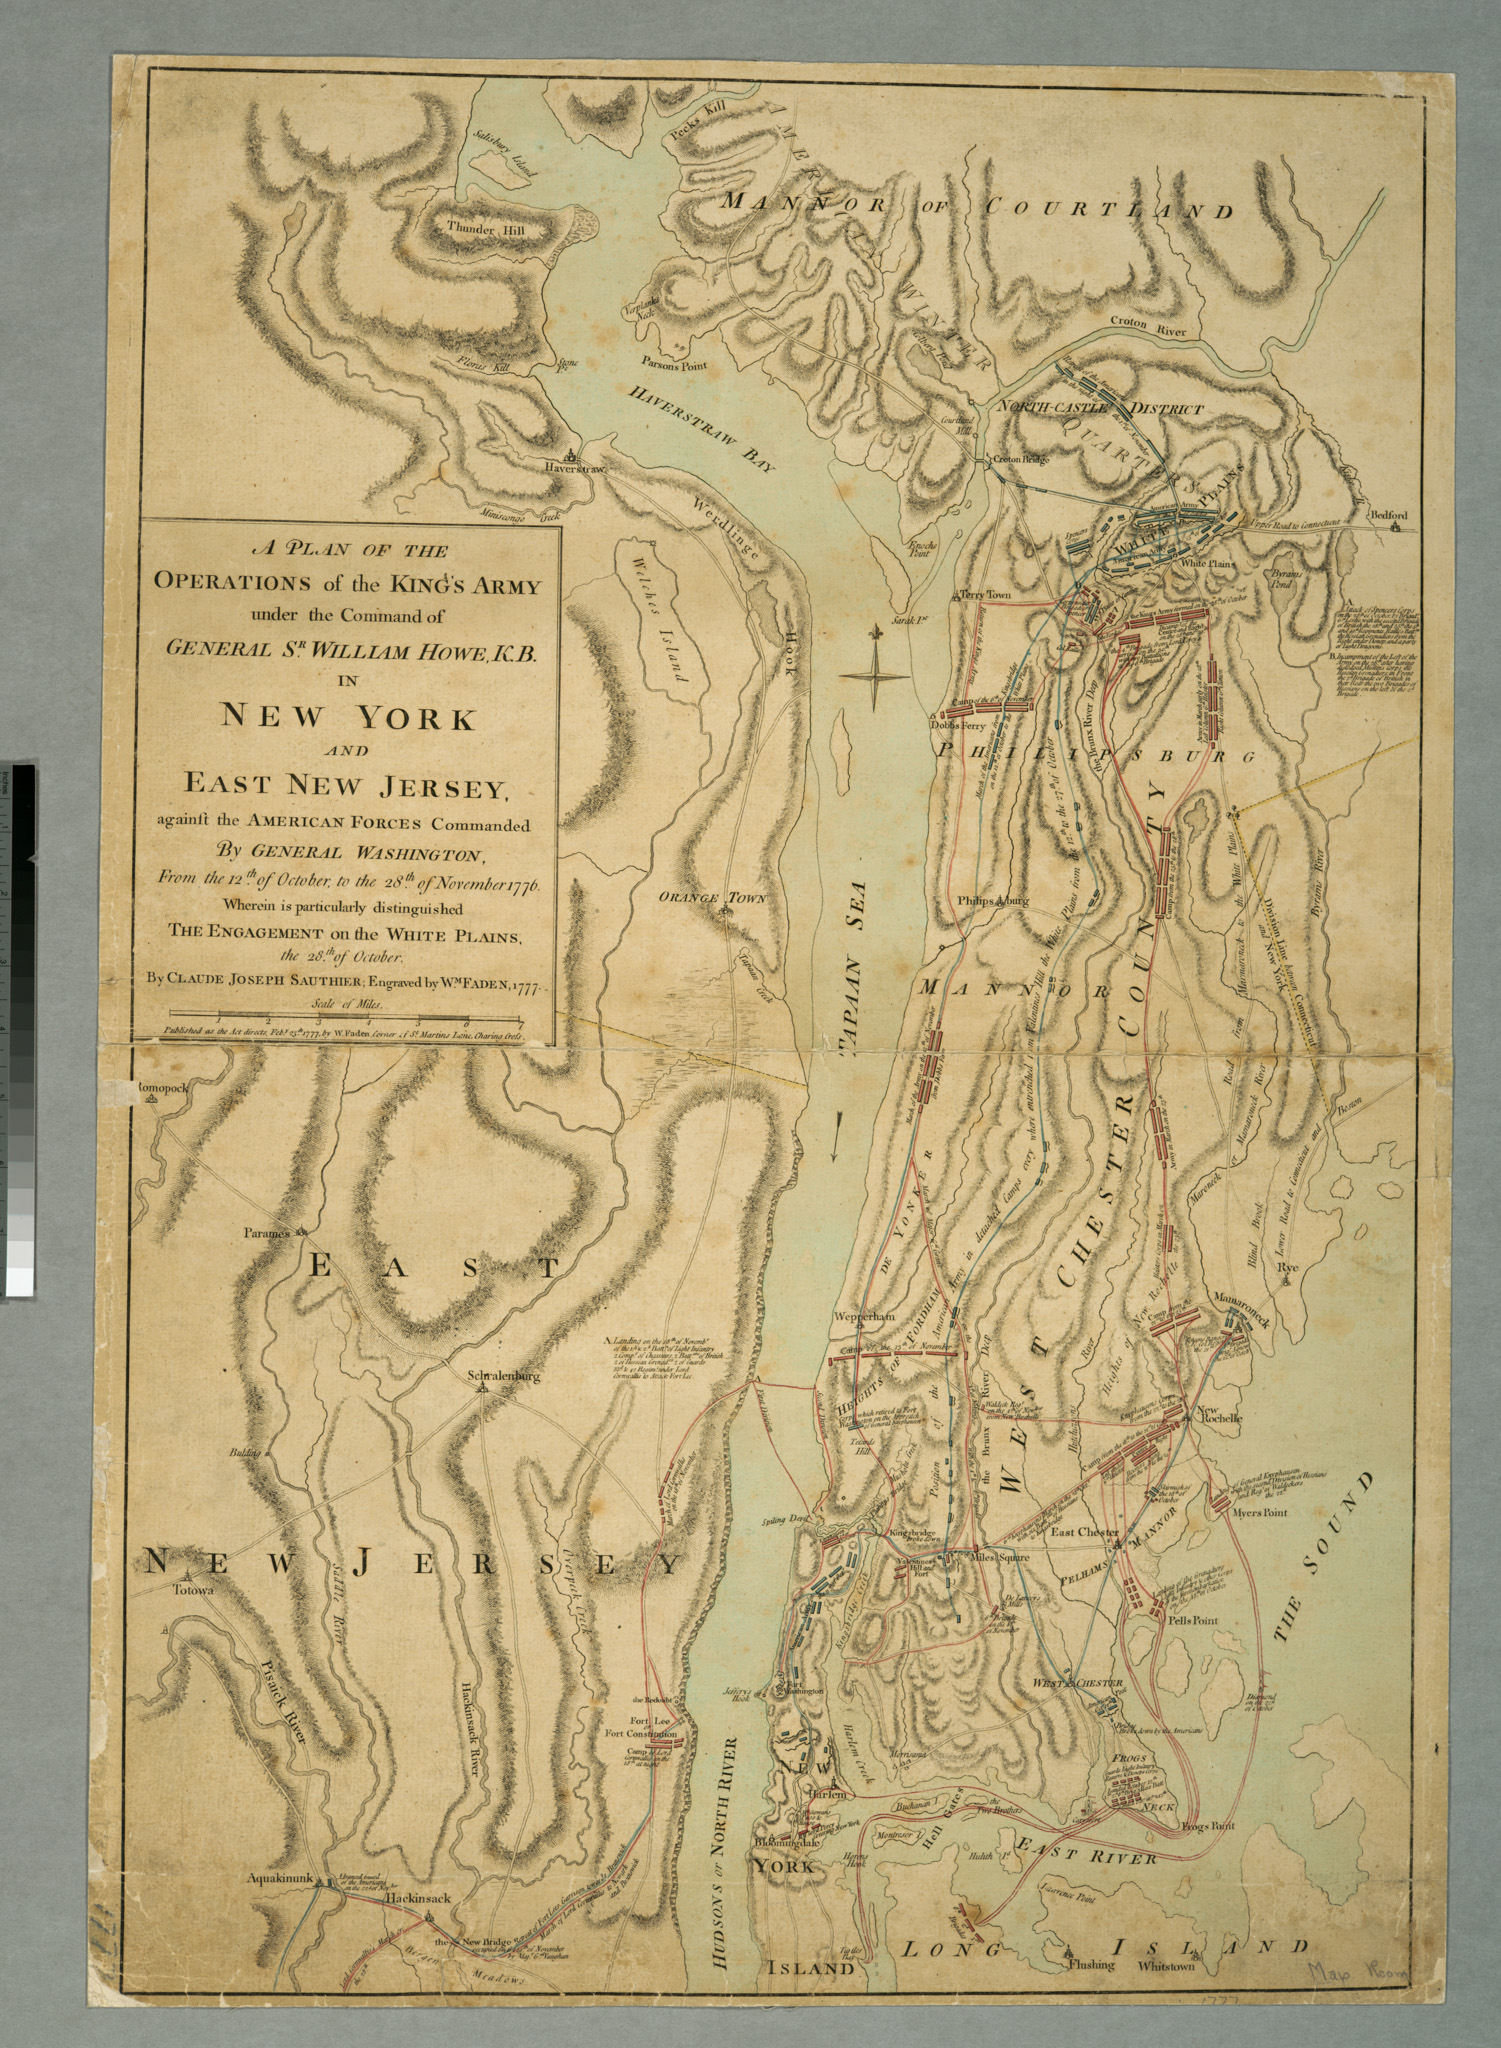 Battle of White Plains by William Faden in 1777